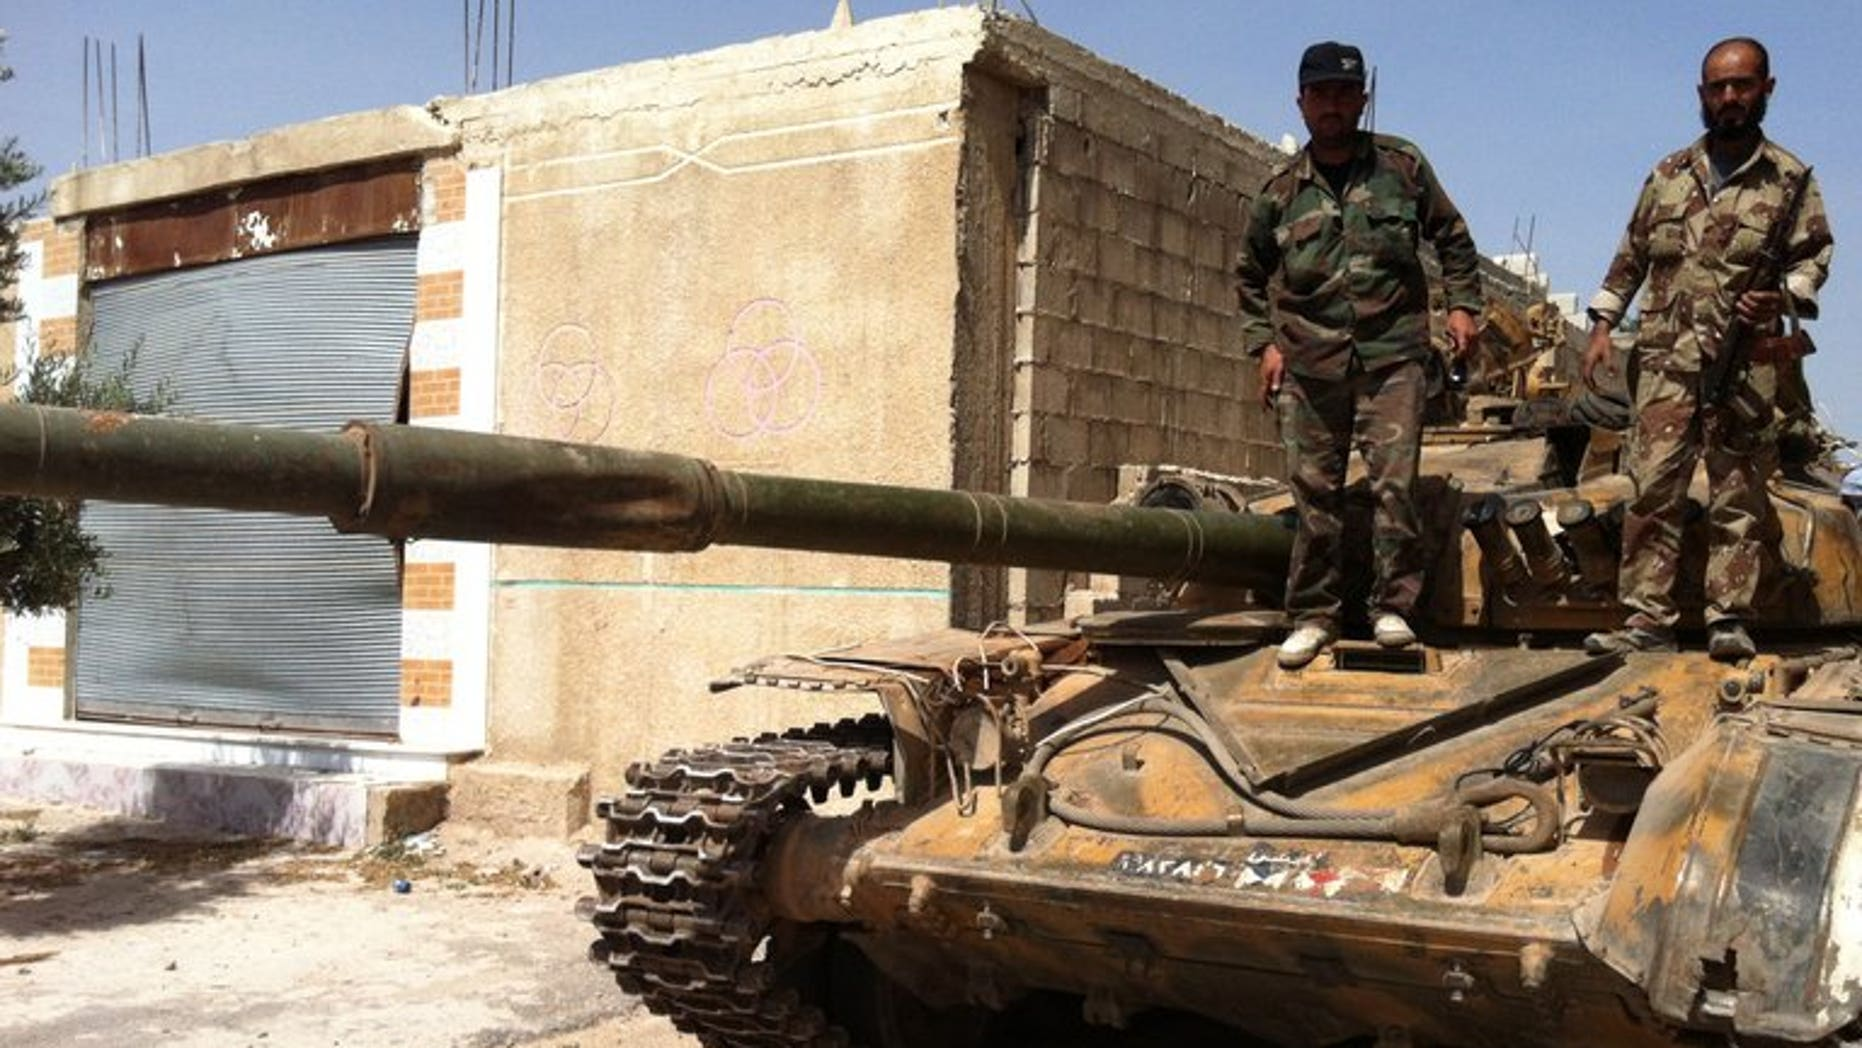 Syrian army soldiers stand on a tank in the village of Buweida, in Homs province on June 8, 2013. Syrian troops have advanced into the rebel-held Khaldiyeh district of central Homs, with shelling intensifying as forces battled for a 10th day in the area, activists and an NGO said.